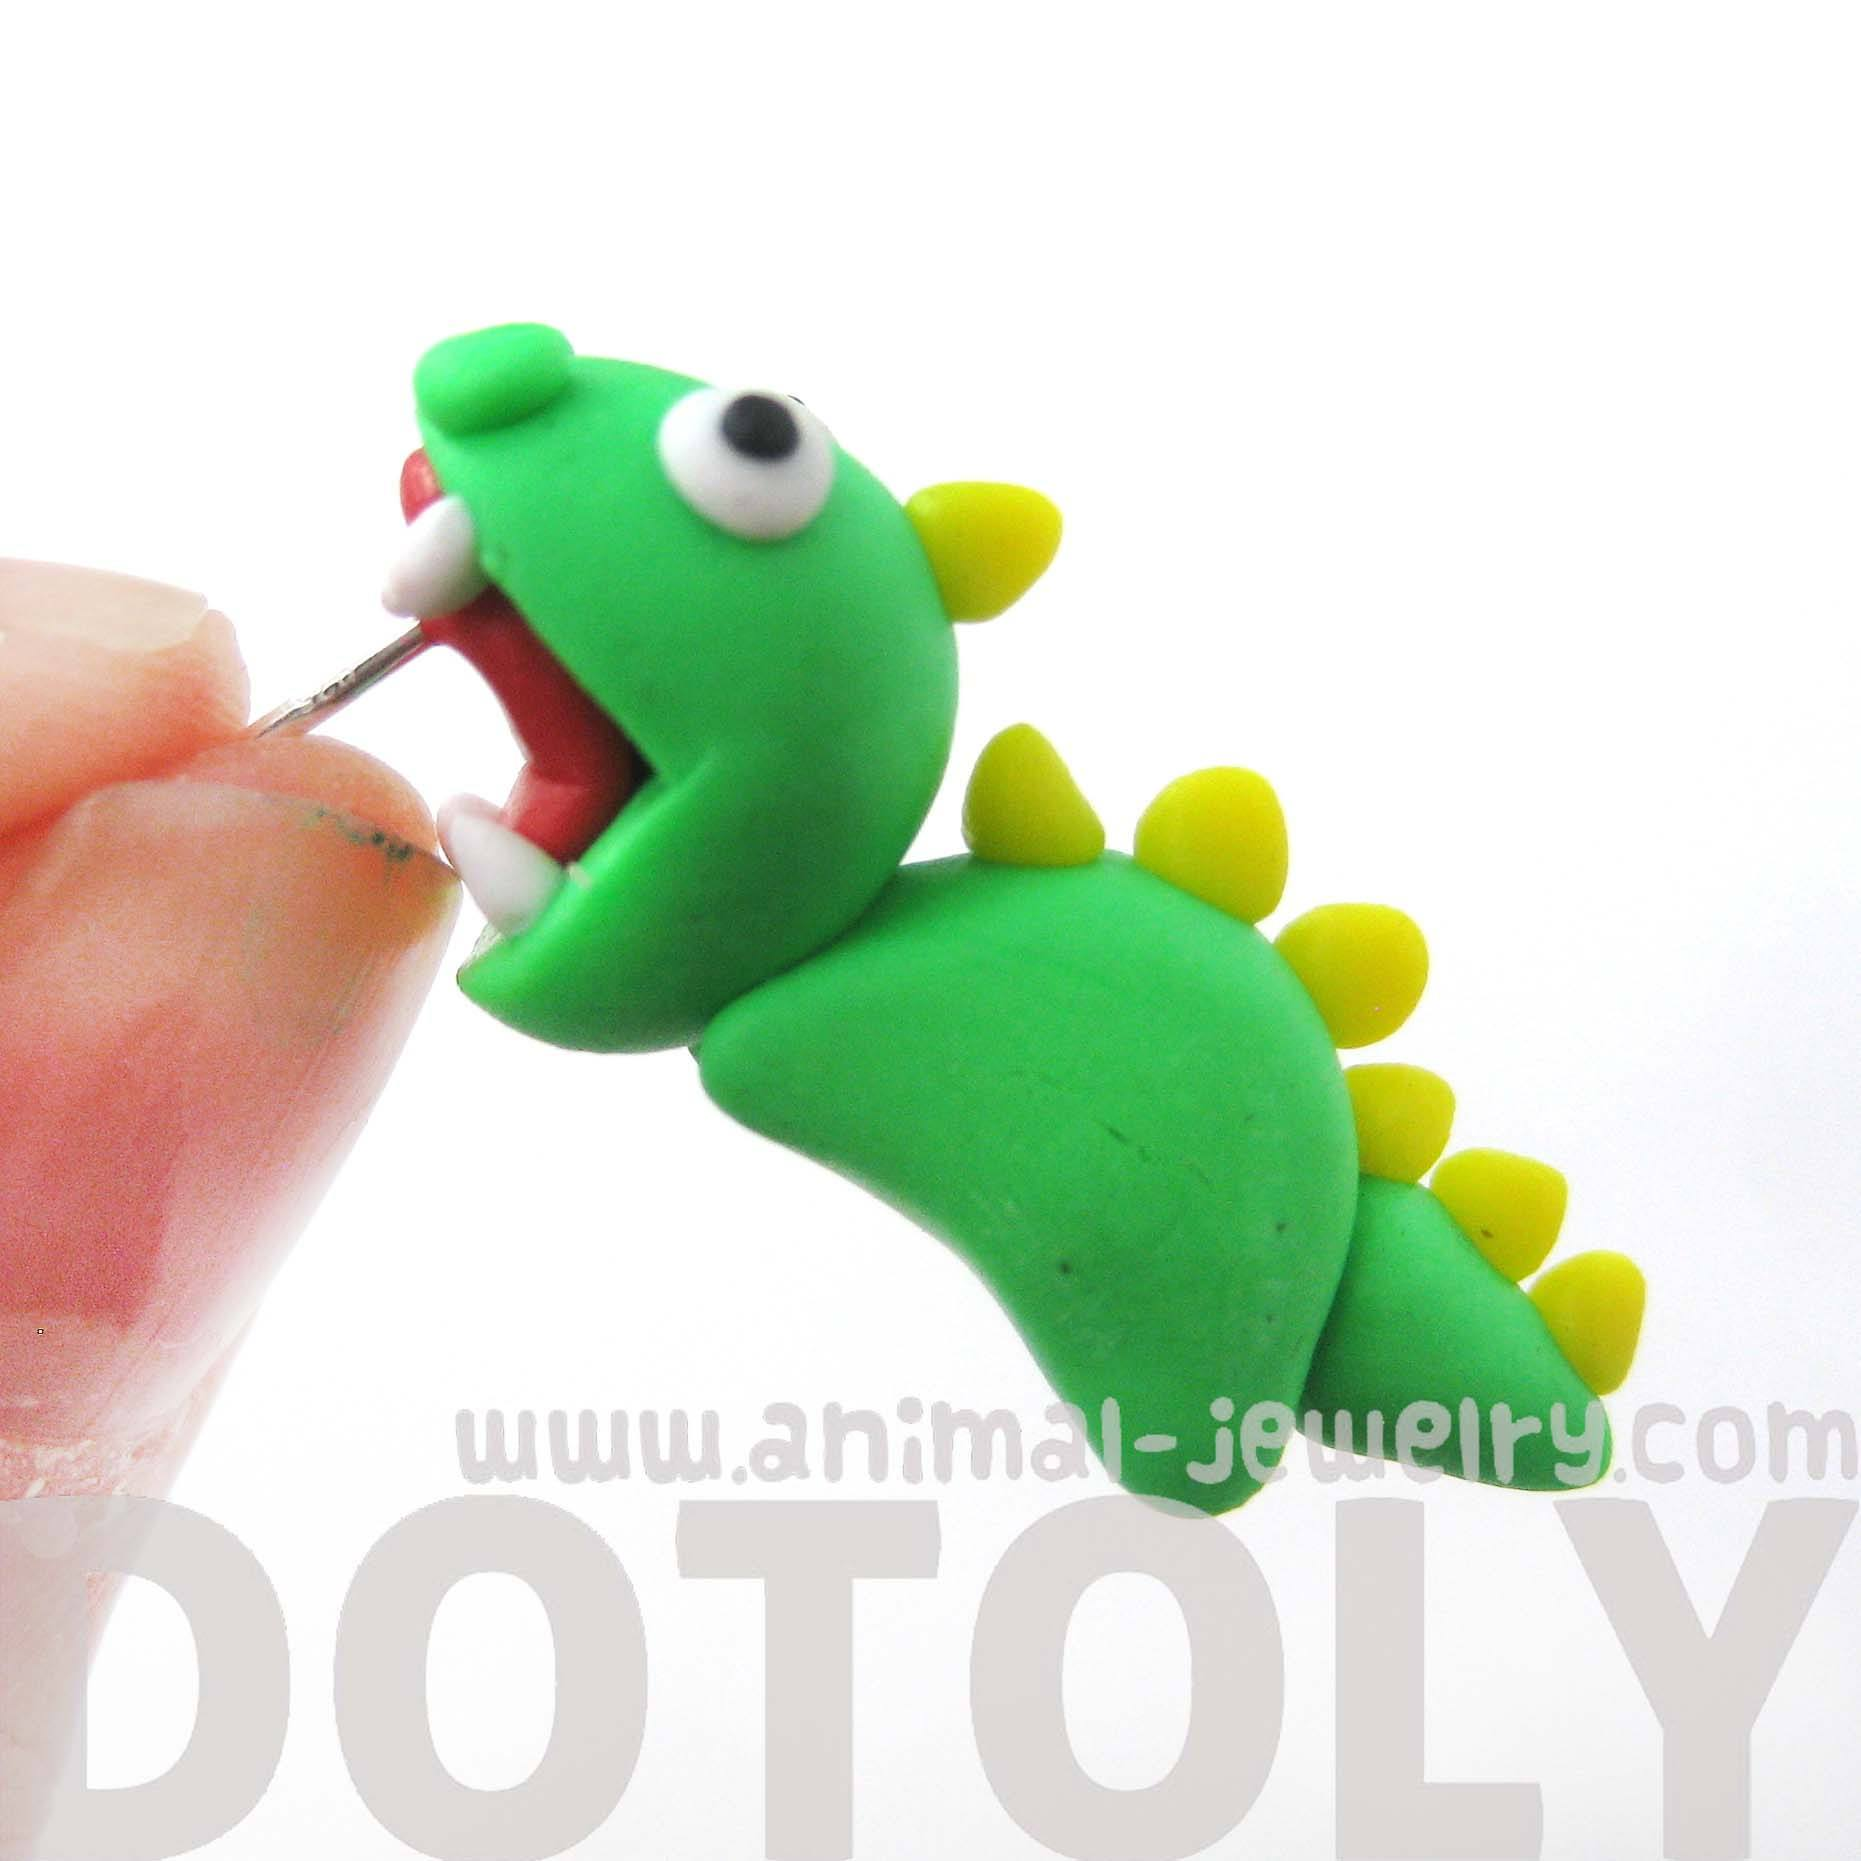 handmade-dinosaur-biting-your-ear-animal-polymer-clay-stud-earringhandmade-dinosaur-biting-your-ear-animal-polymer-clay-stud-earring